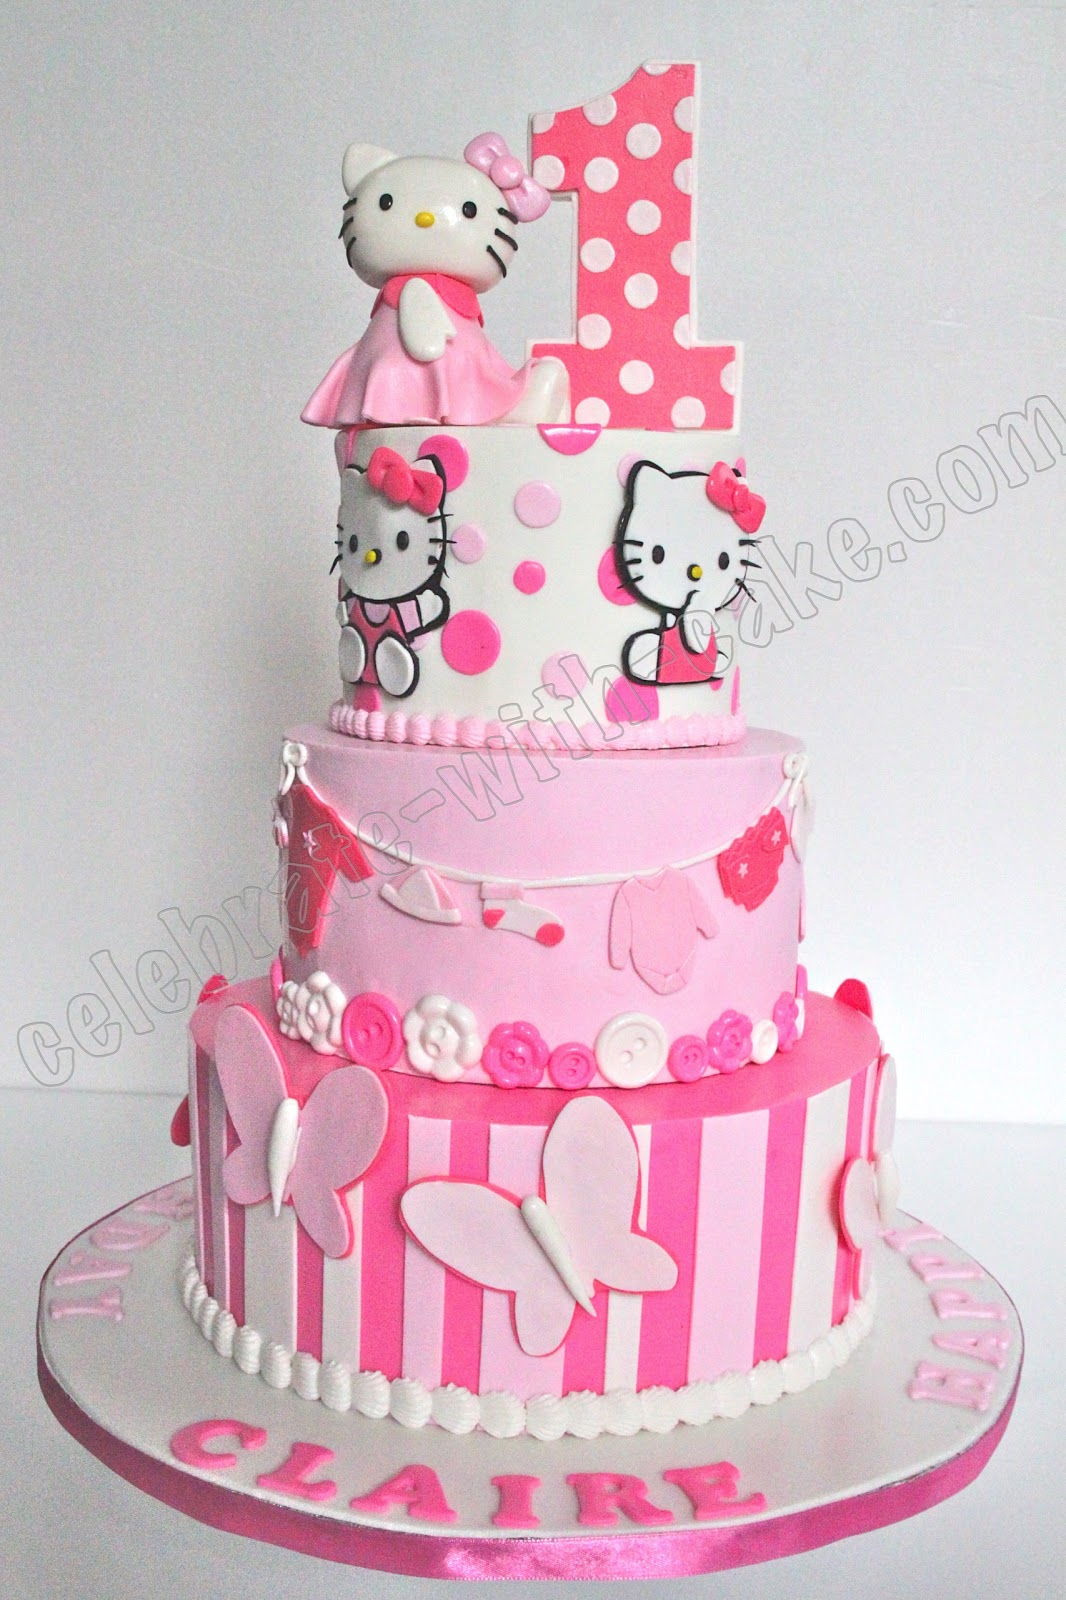 Birthday Cake Pictures Hello Kitty : Celebrate with Cake!: Hello Kitty Cake